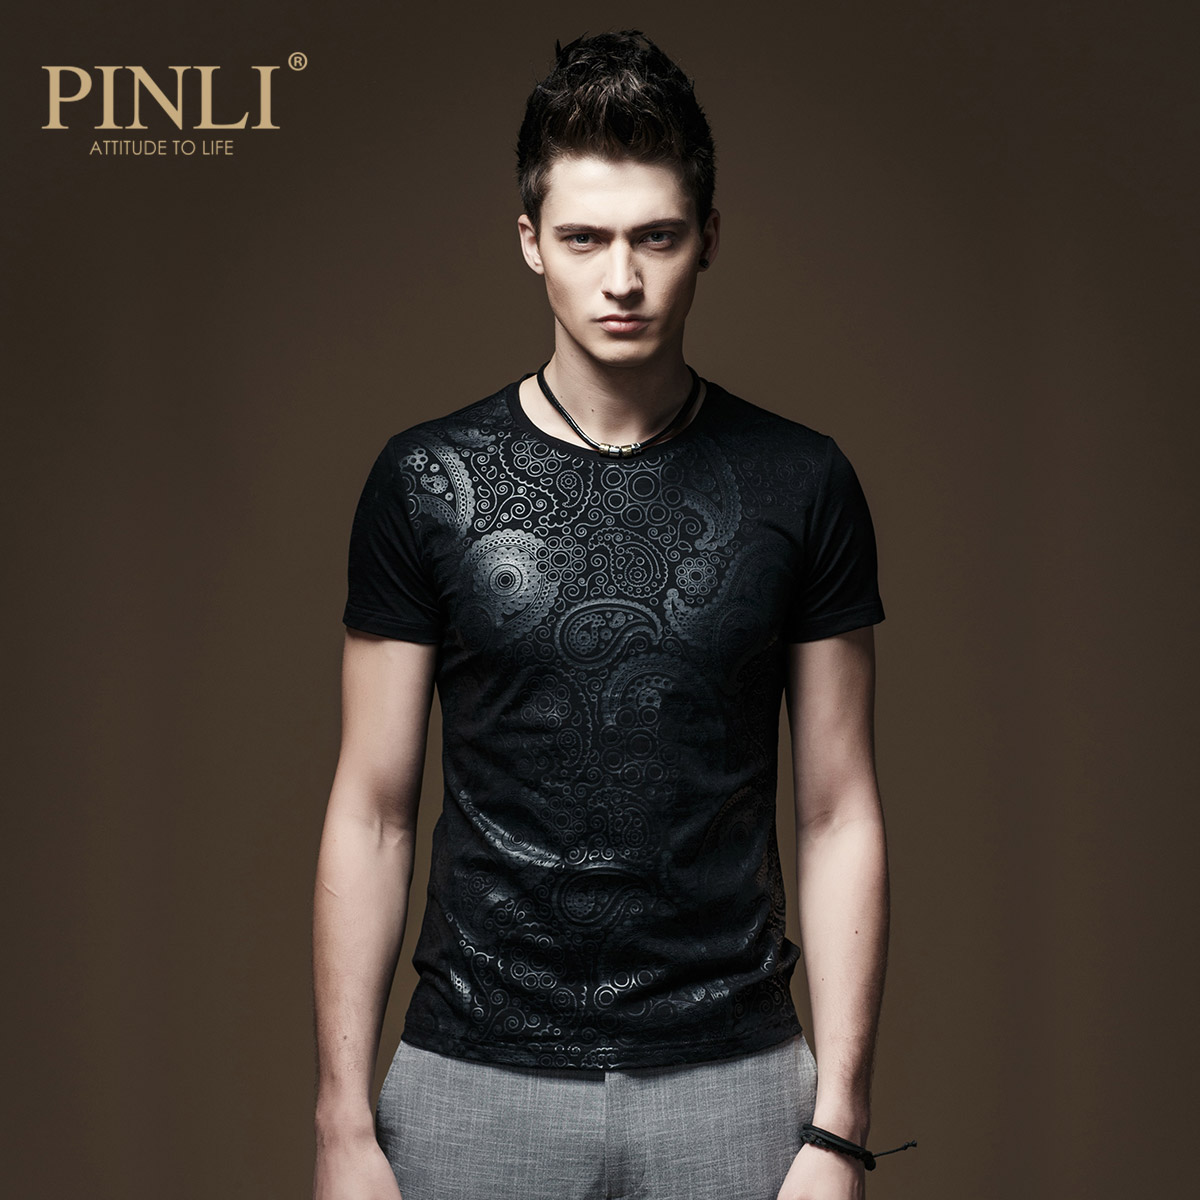 2017 New Arrival Rushed No Pinli Pinly Men's T-shirt, Short Sleeved Men Wet Clothes Sleeve Male Summer Boys Slim T-shirt T142